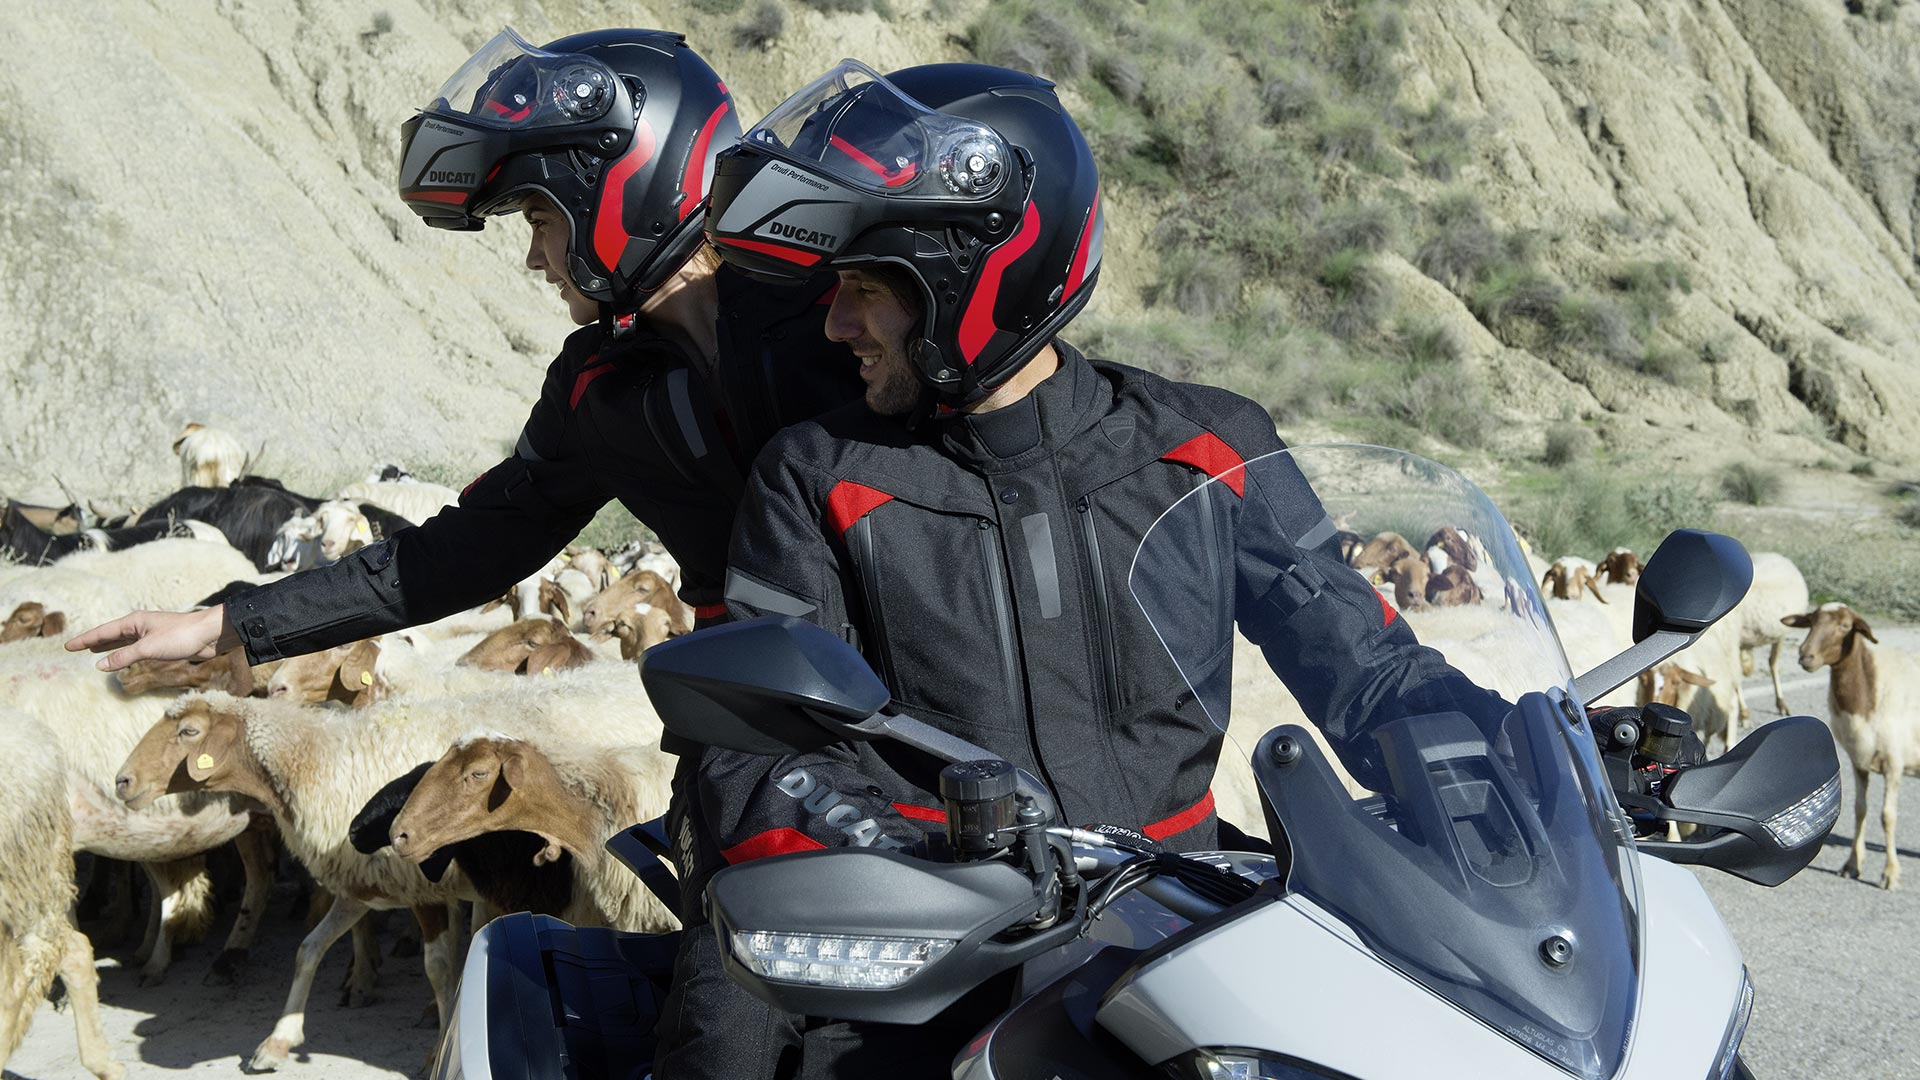 Multistrada 950 apparel